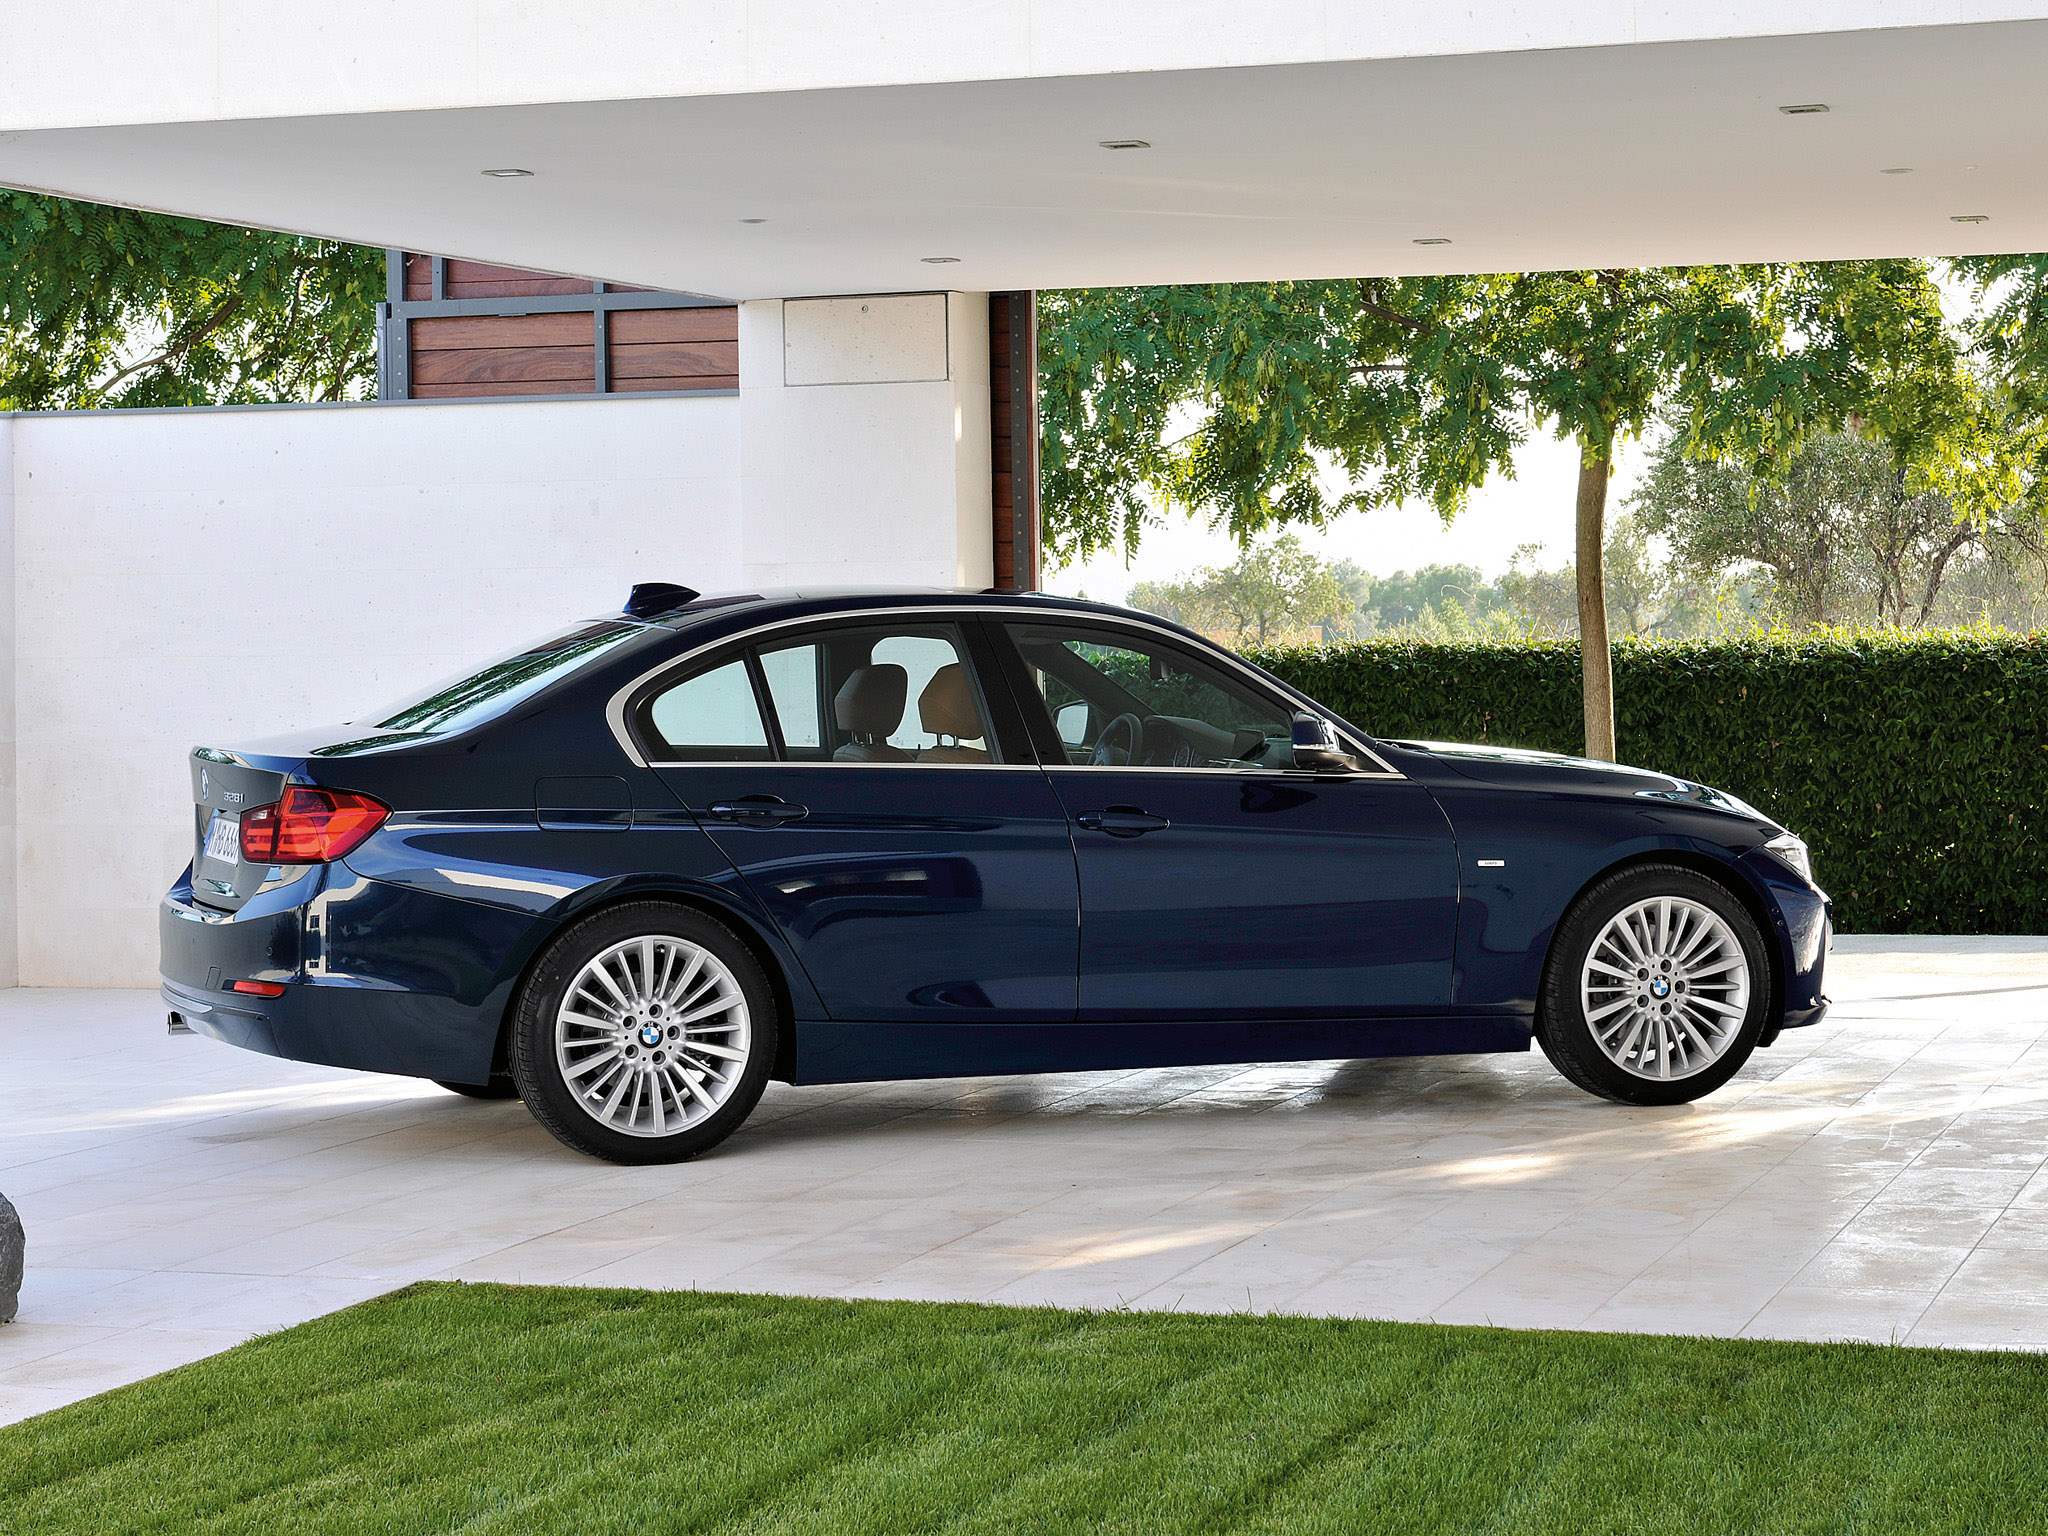 Bmw 3 Series 328i Sedan Luxury Line F30 2012 Photo 09 Car In Pictures Car Photo Gallery